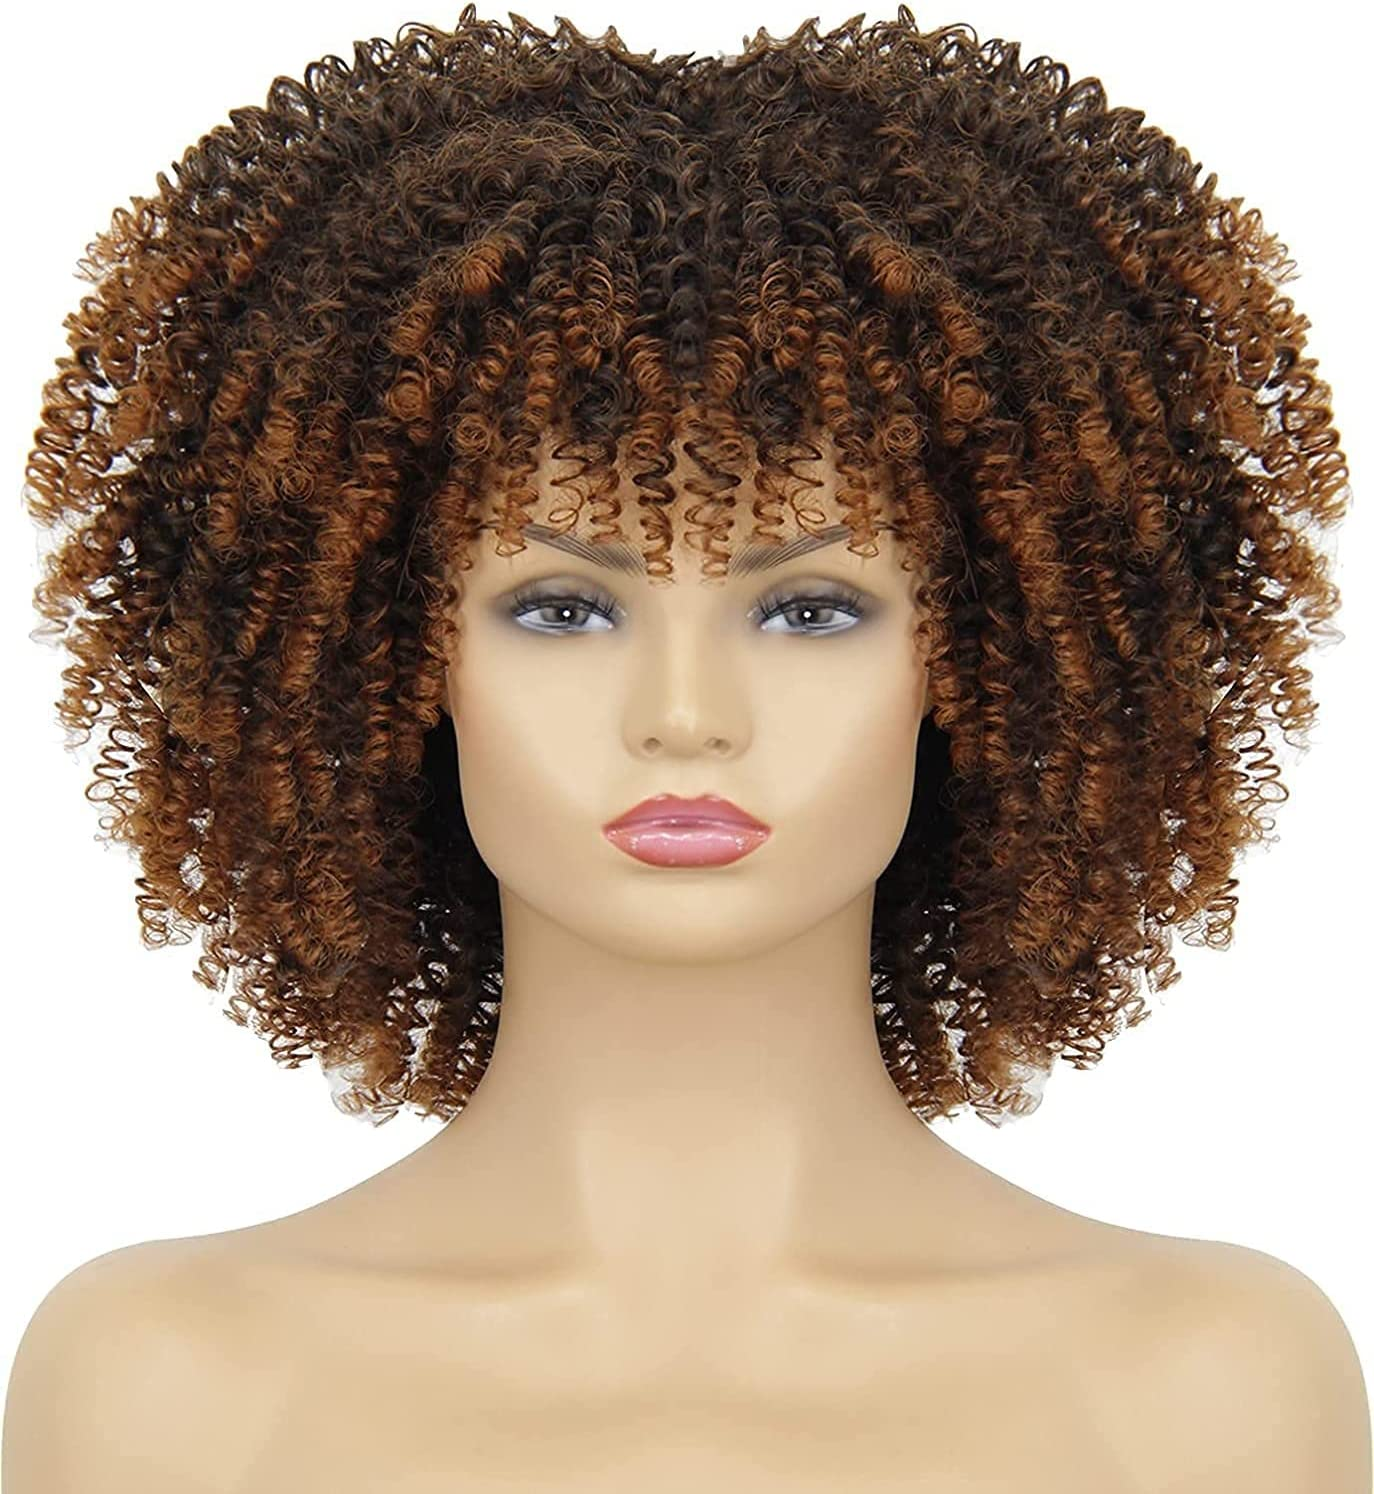 Limited time trial price xiaoji Black Female Curly Bangs Heat-Resi Max 86% OFF Natural Wig Appearance